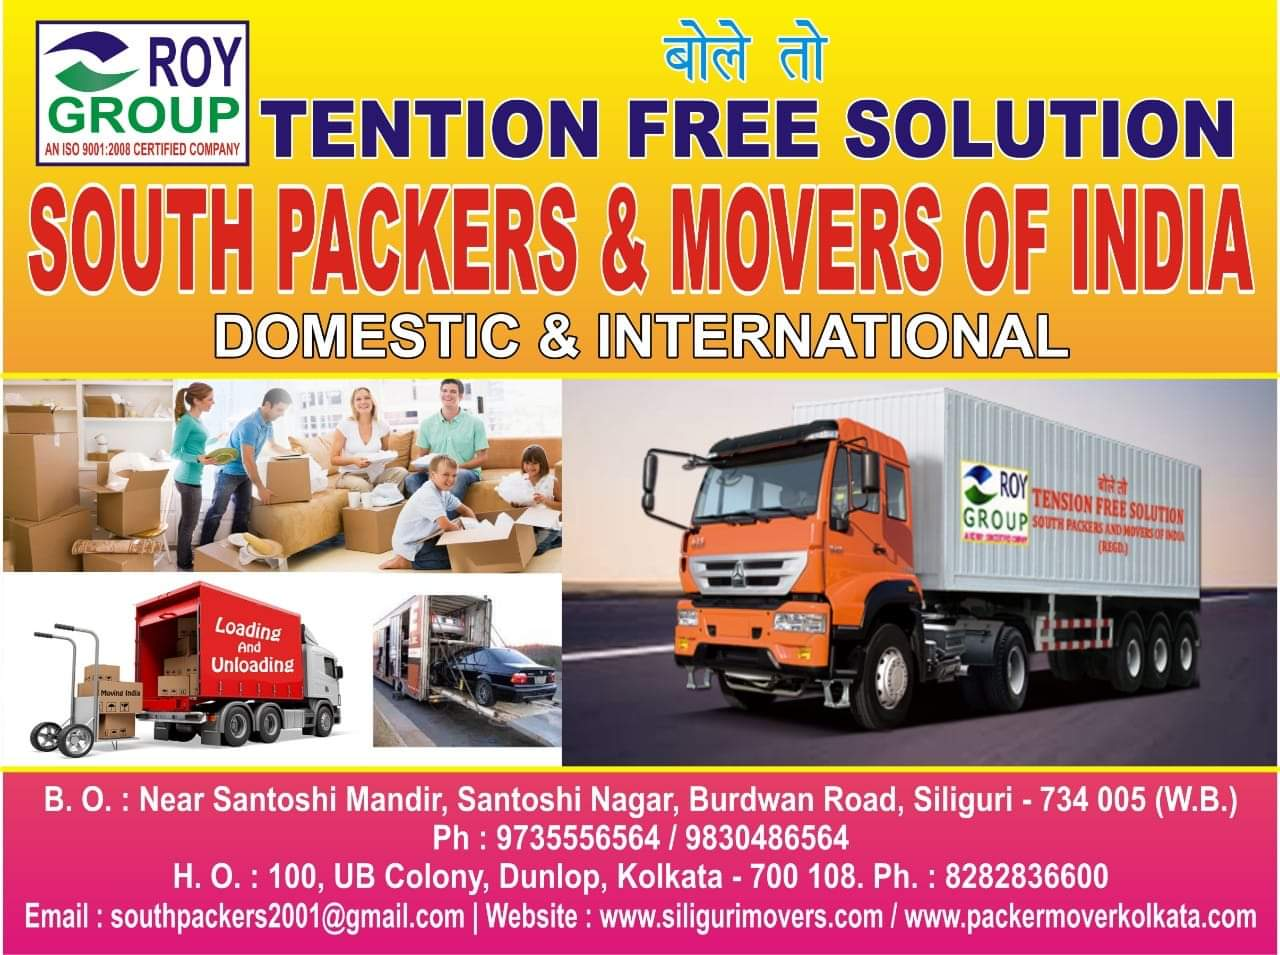 South Packers & Movers Of India in Dunlop, Kolkata-700108